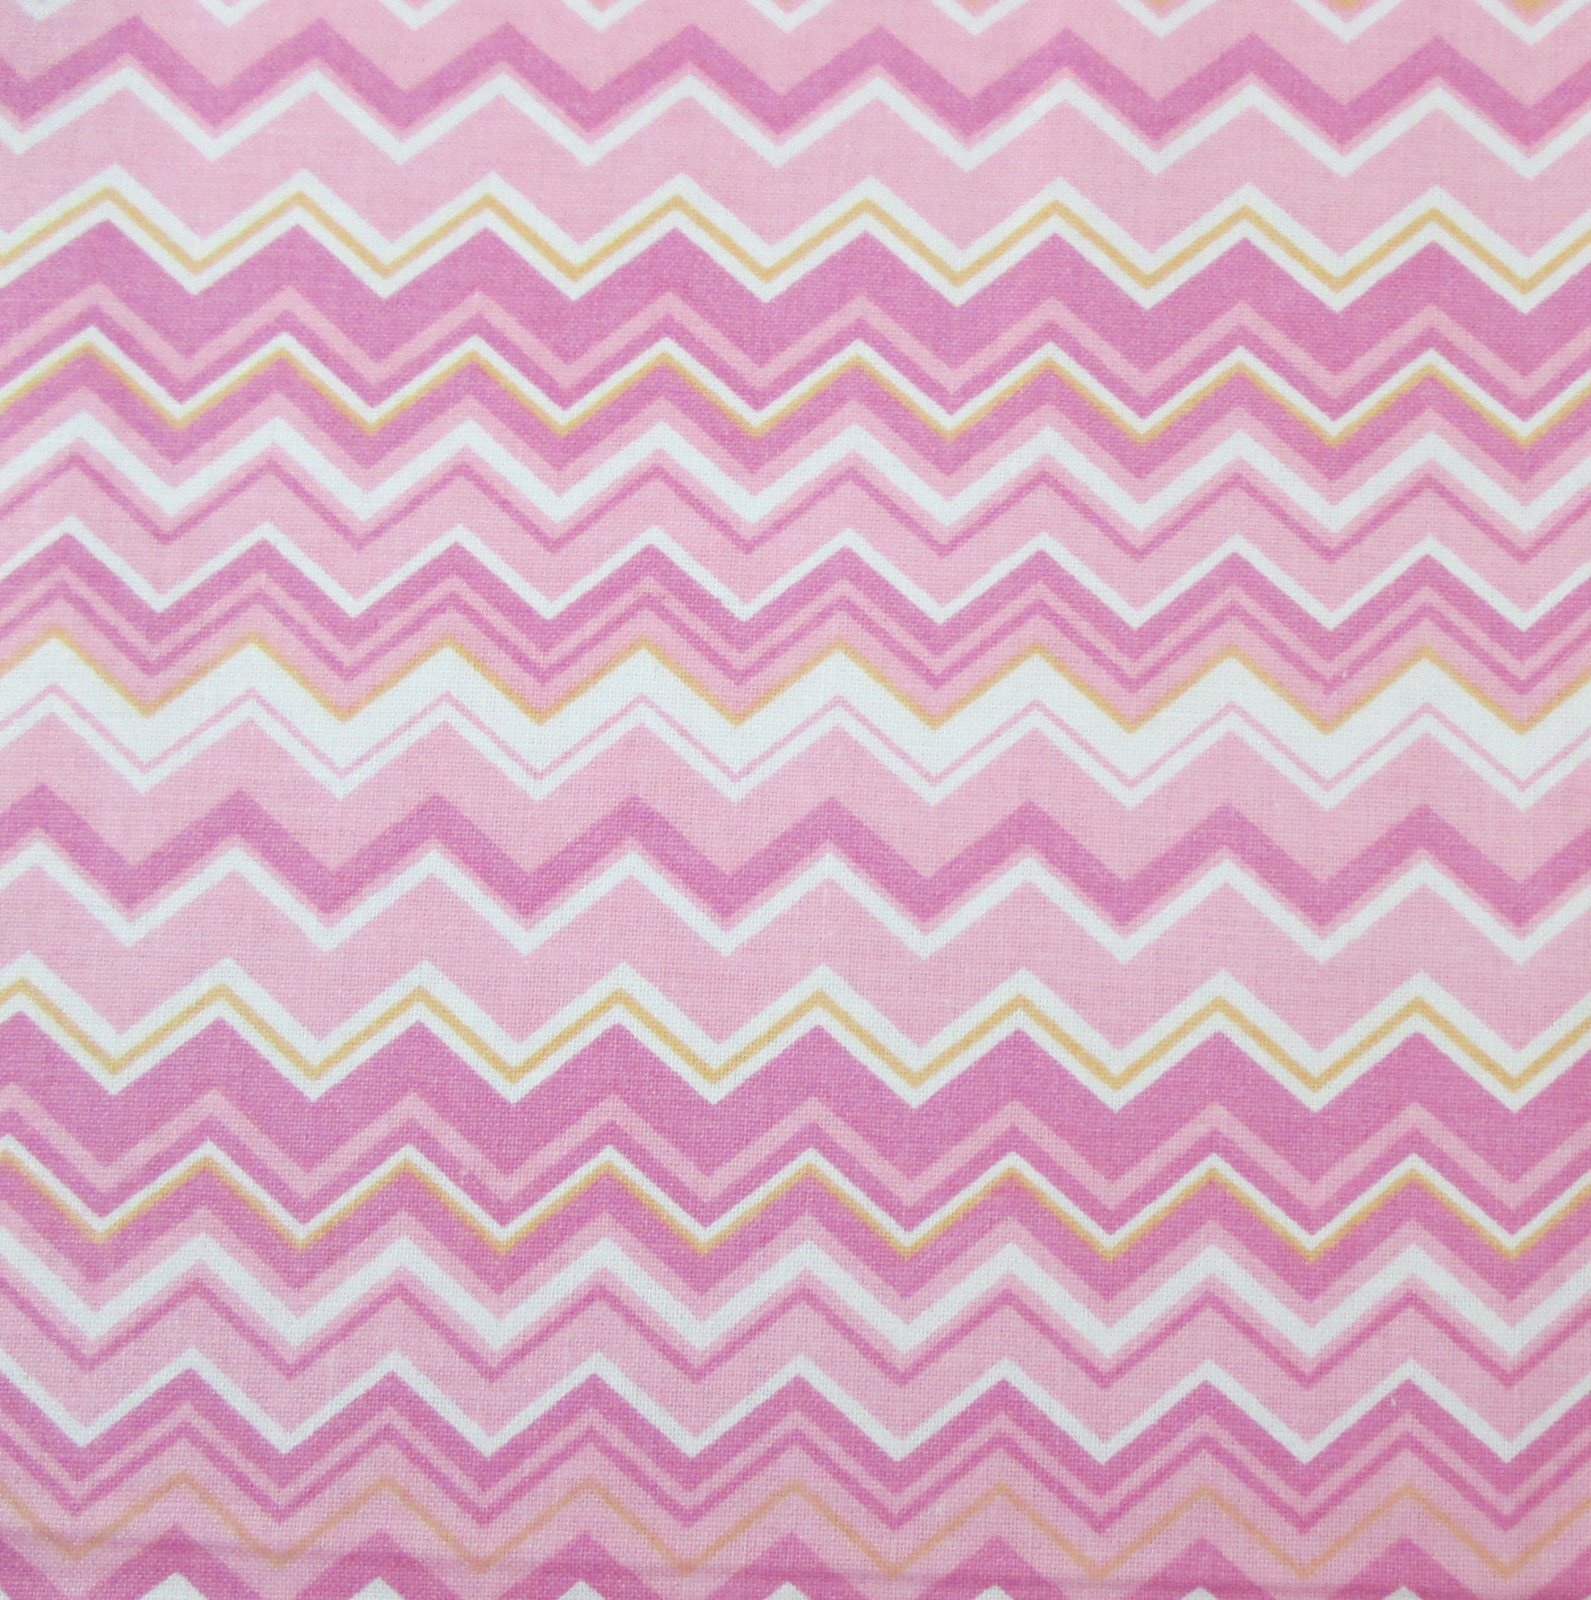 A.E. Nathan - Chevron - Pink/Orange/White